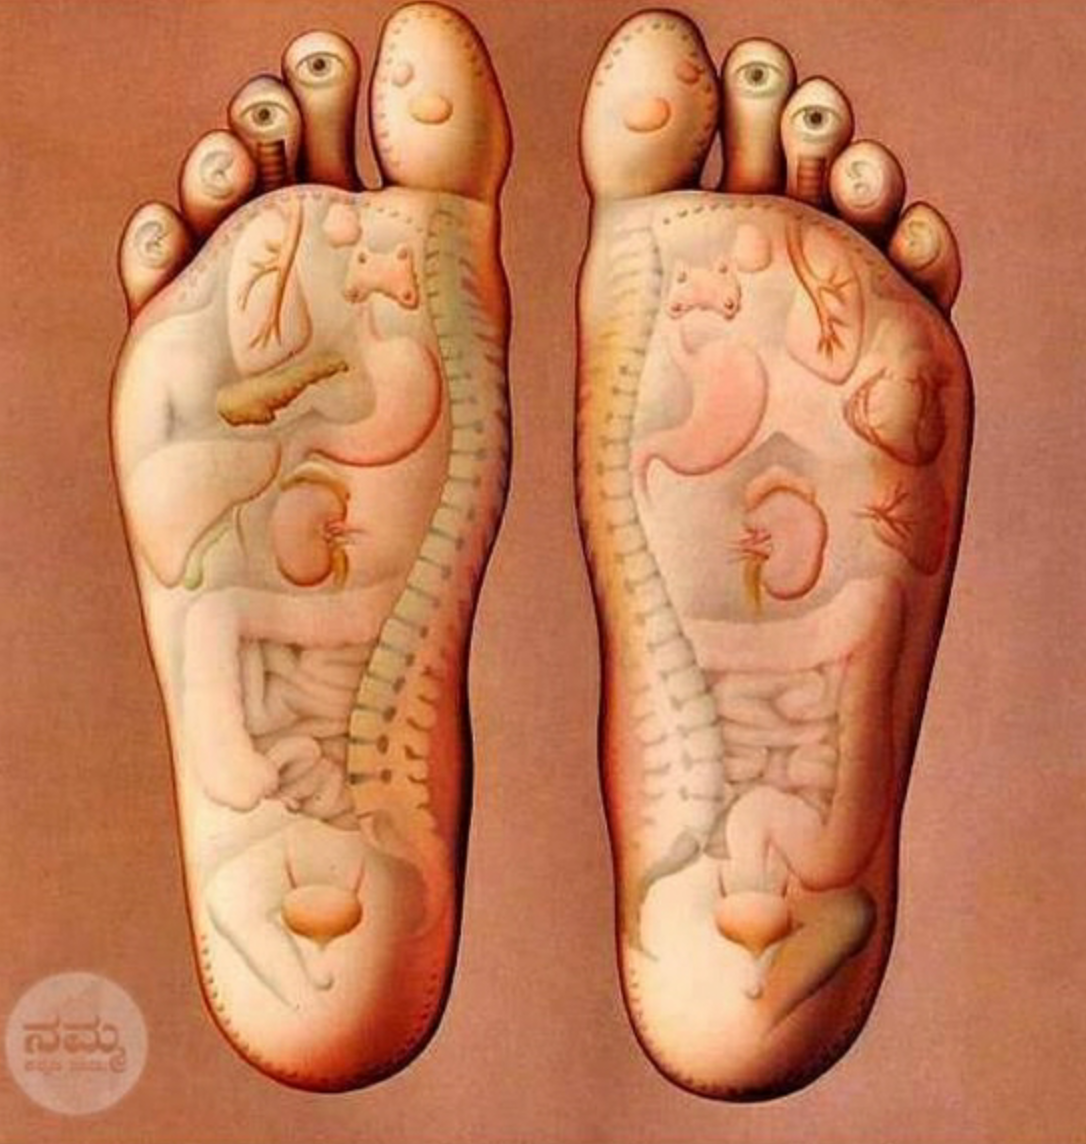 An example of a reflexology chart, demonstrating the areas of the feet that  correspond with different  organ systems, functions and parts of the body